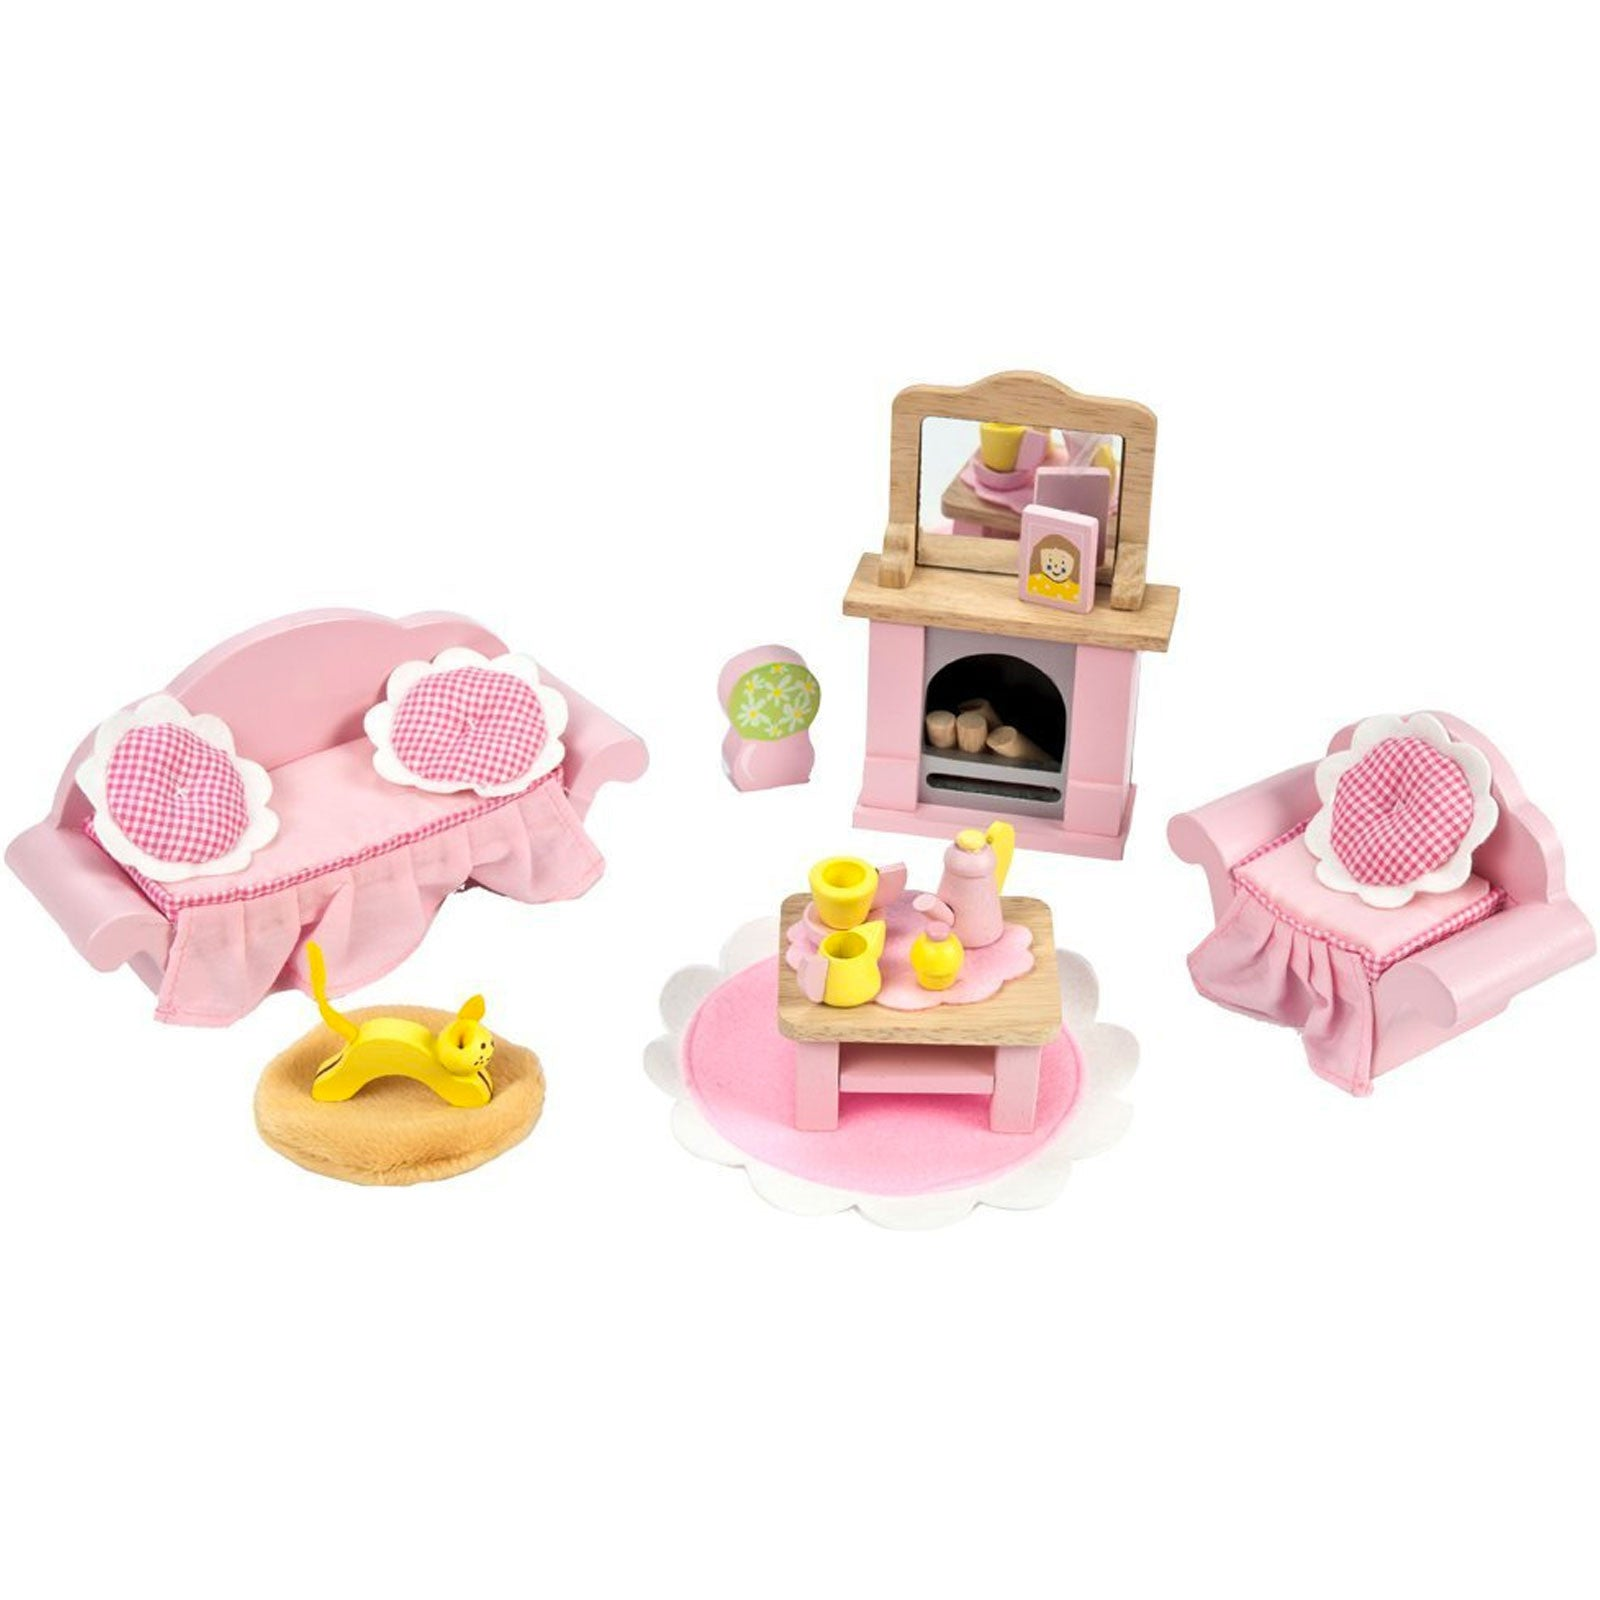 Le Toy Van Dolls House Furniture Le Toy Van Dollhouse Accessories Sitting Room at Little Earth Nest Eco Shop